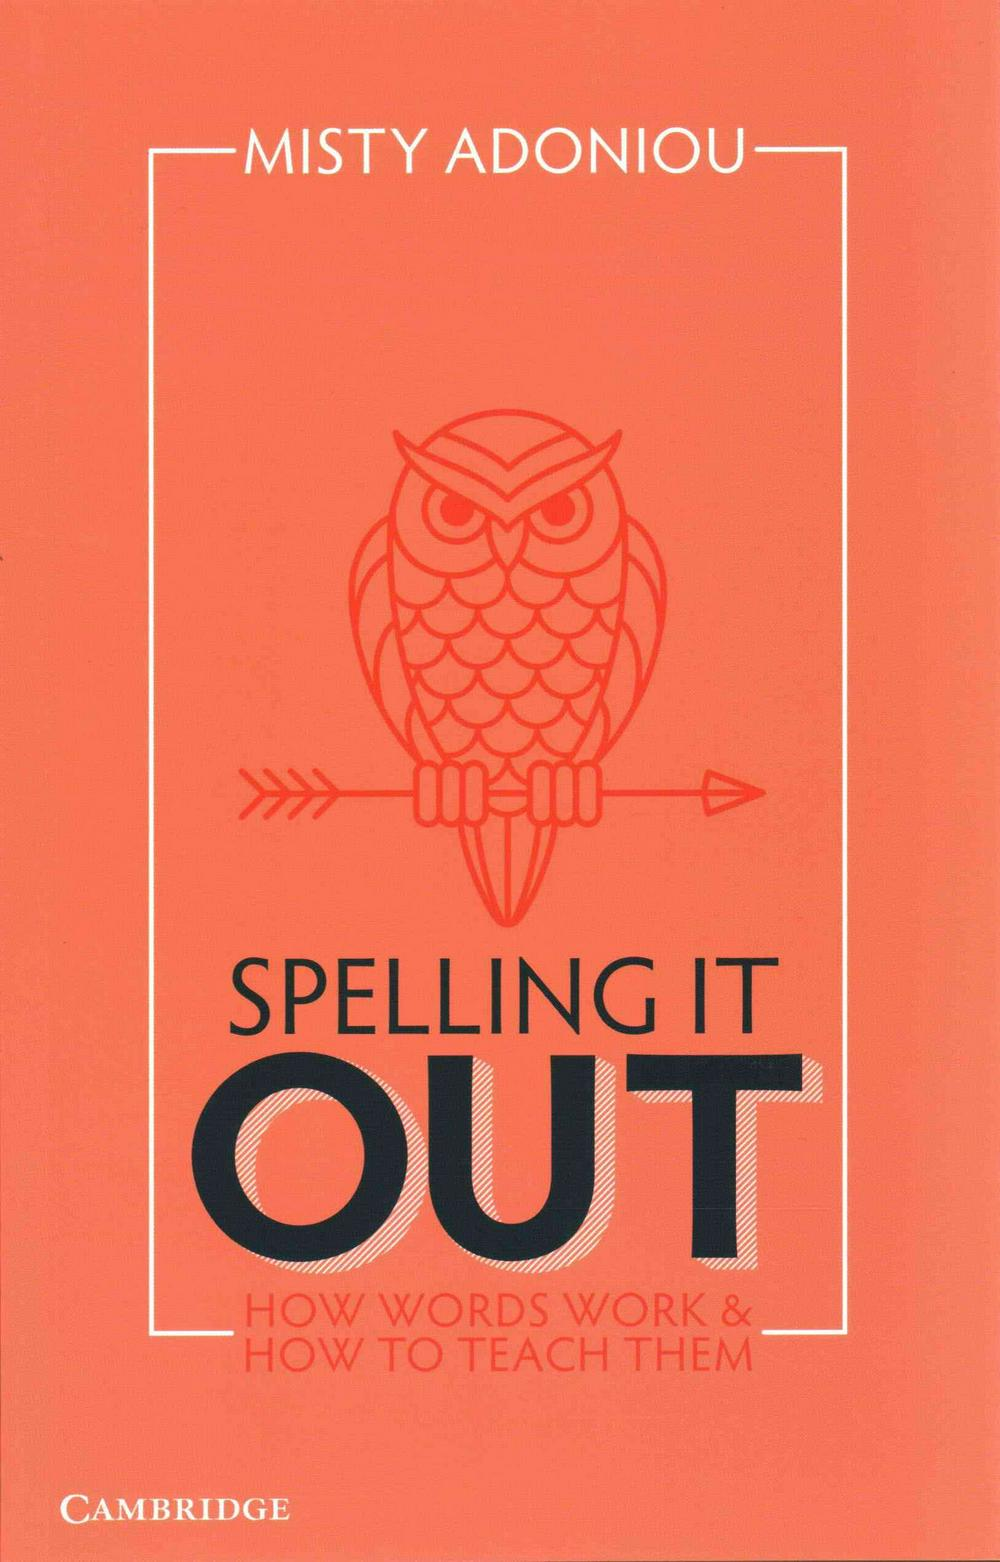 Spelling It Out: How Words Work and How to Teach Them by Misty Adoniou, ISBN: 9781107557659